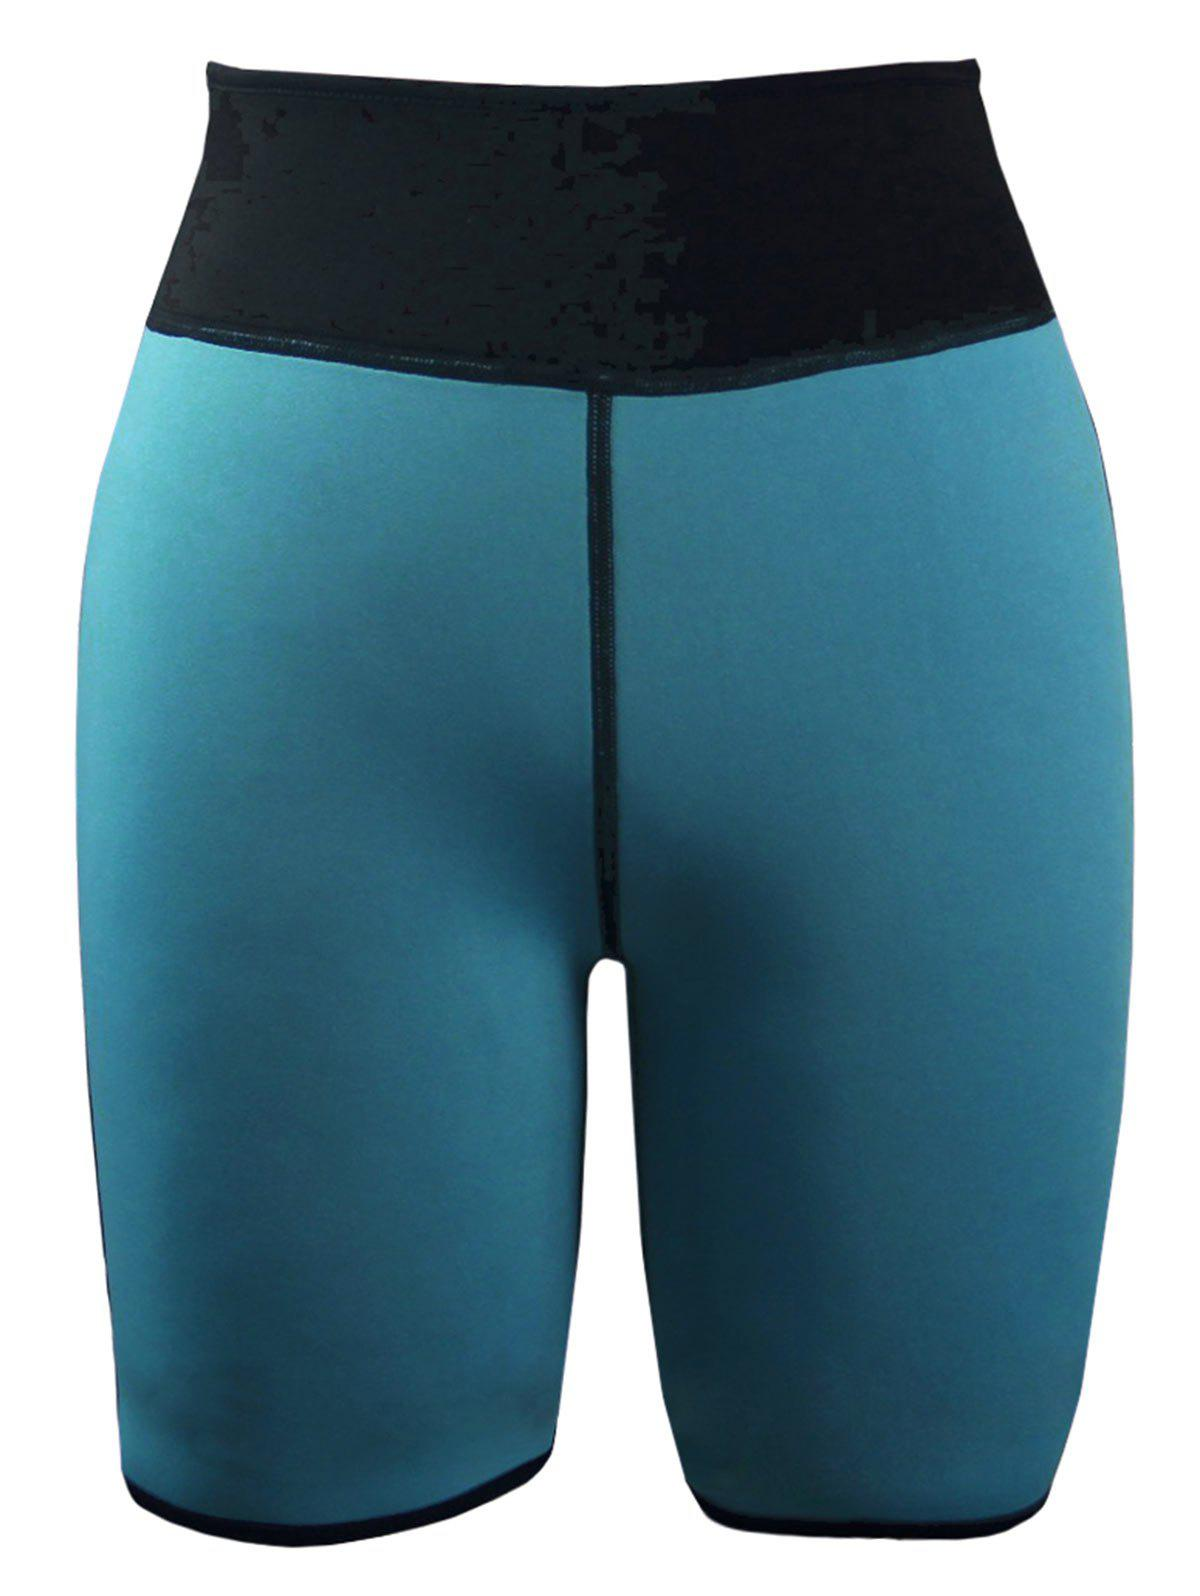 Color Block High Waist Neoprene Sport Shorts - MALACHITE GREEN XL